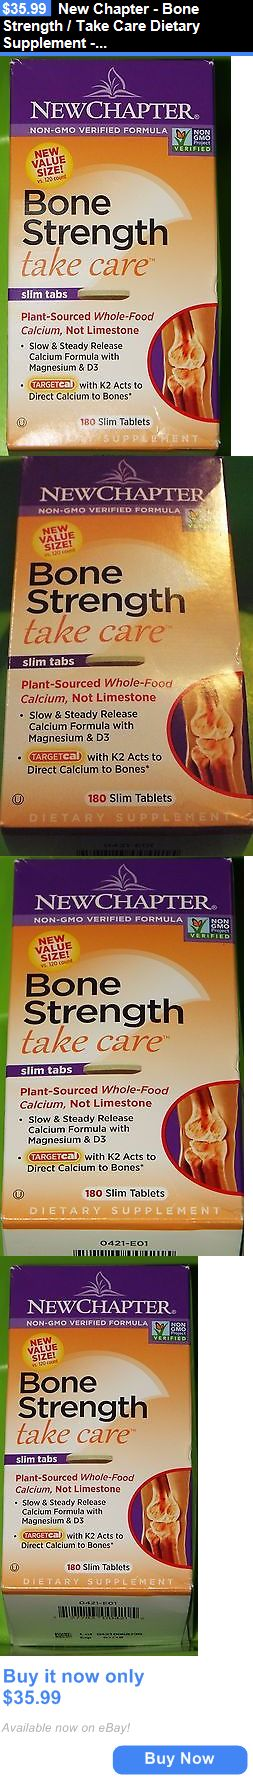 Health And Fitness: New Chapter - Bone Strength / Take Care Dietary Supplement - 180 Slim Tablets BUY IT NOW ONLY: $35.99